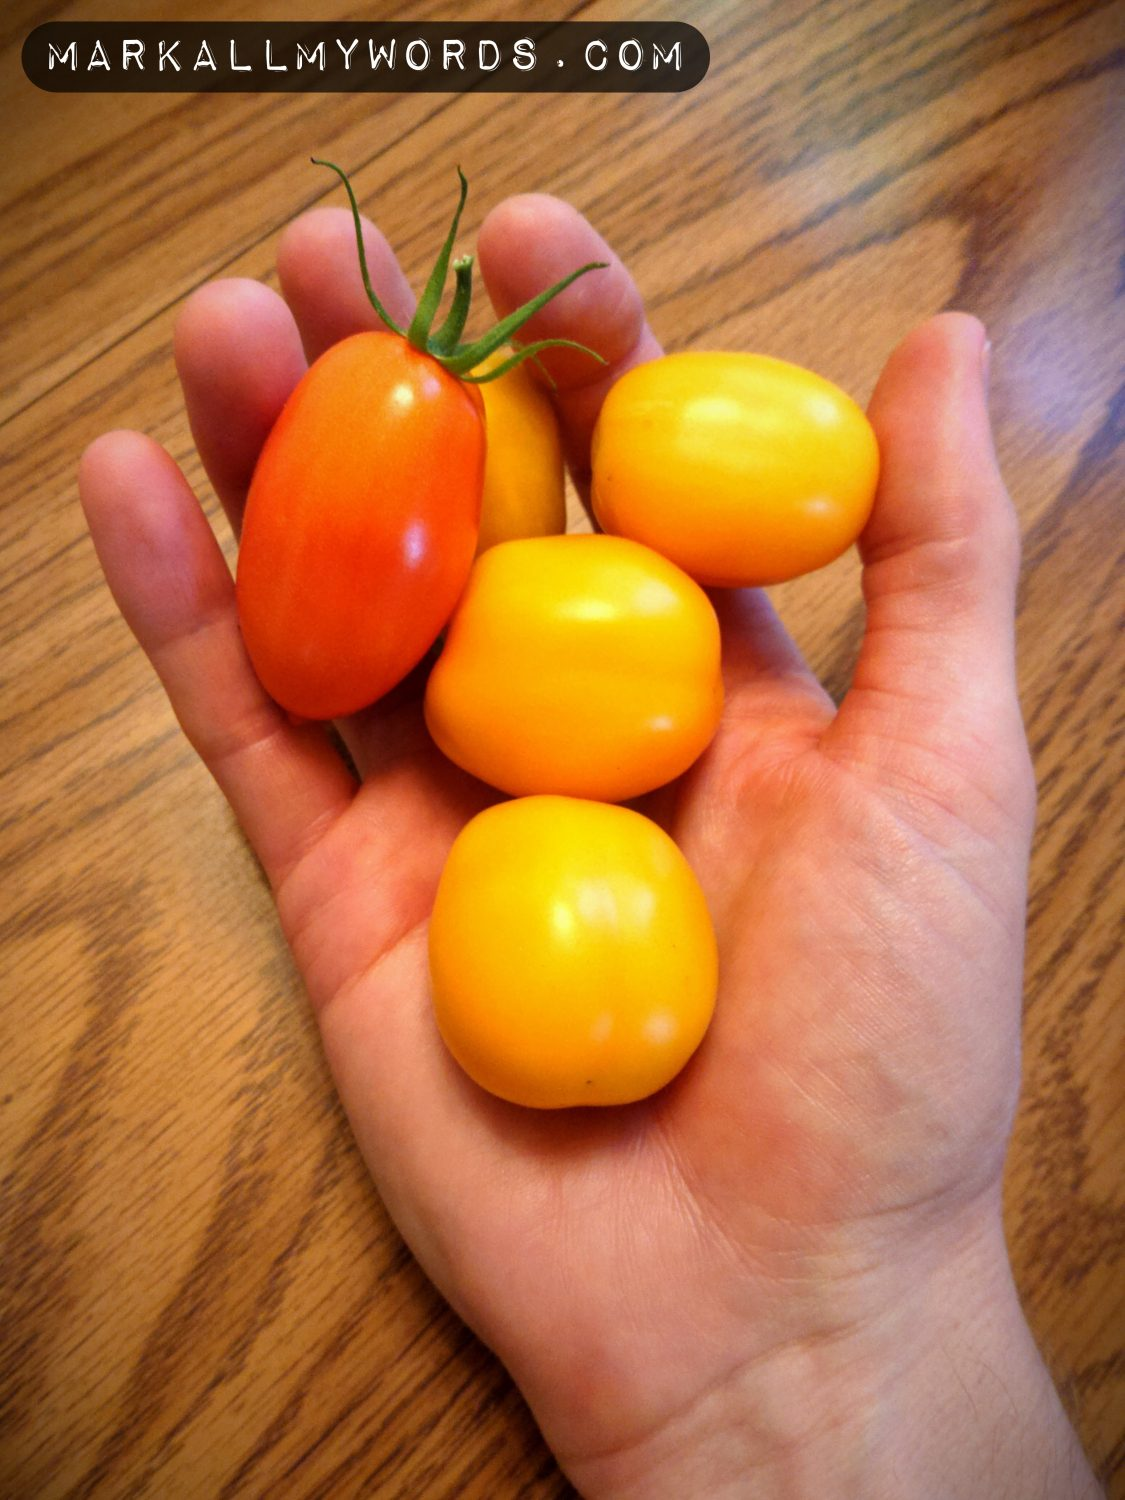 Homegrown yellow tomatoes in outstretched hand